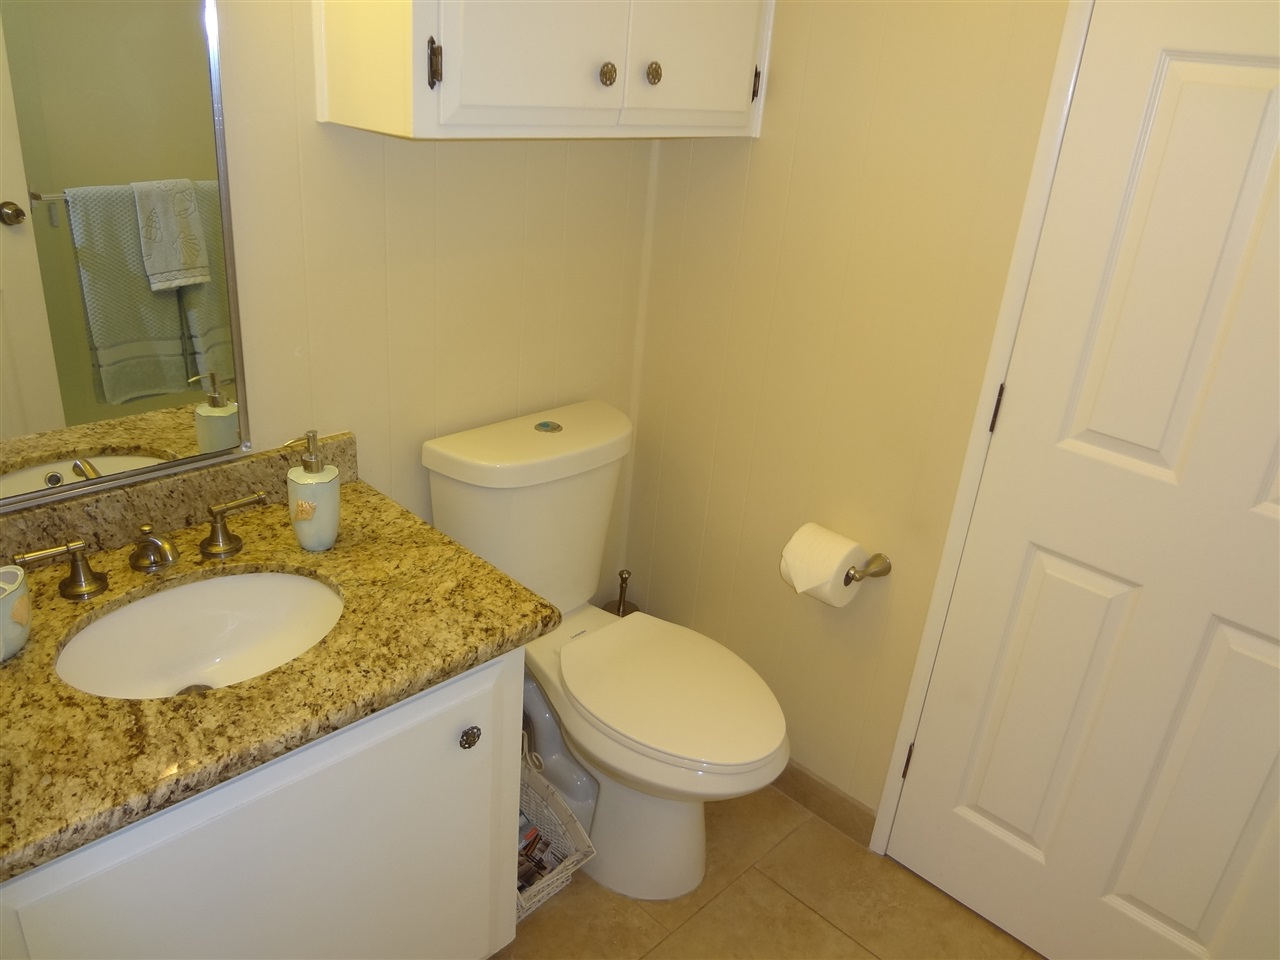 Photo 11: OUT OF AREA Manufactured Home for sale : 2 bedrooms : 133 Mira Del Sur in San Clemente